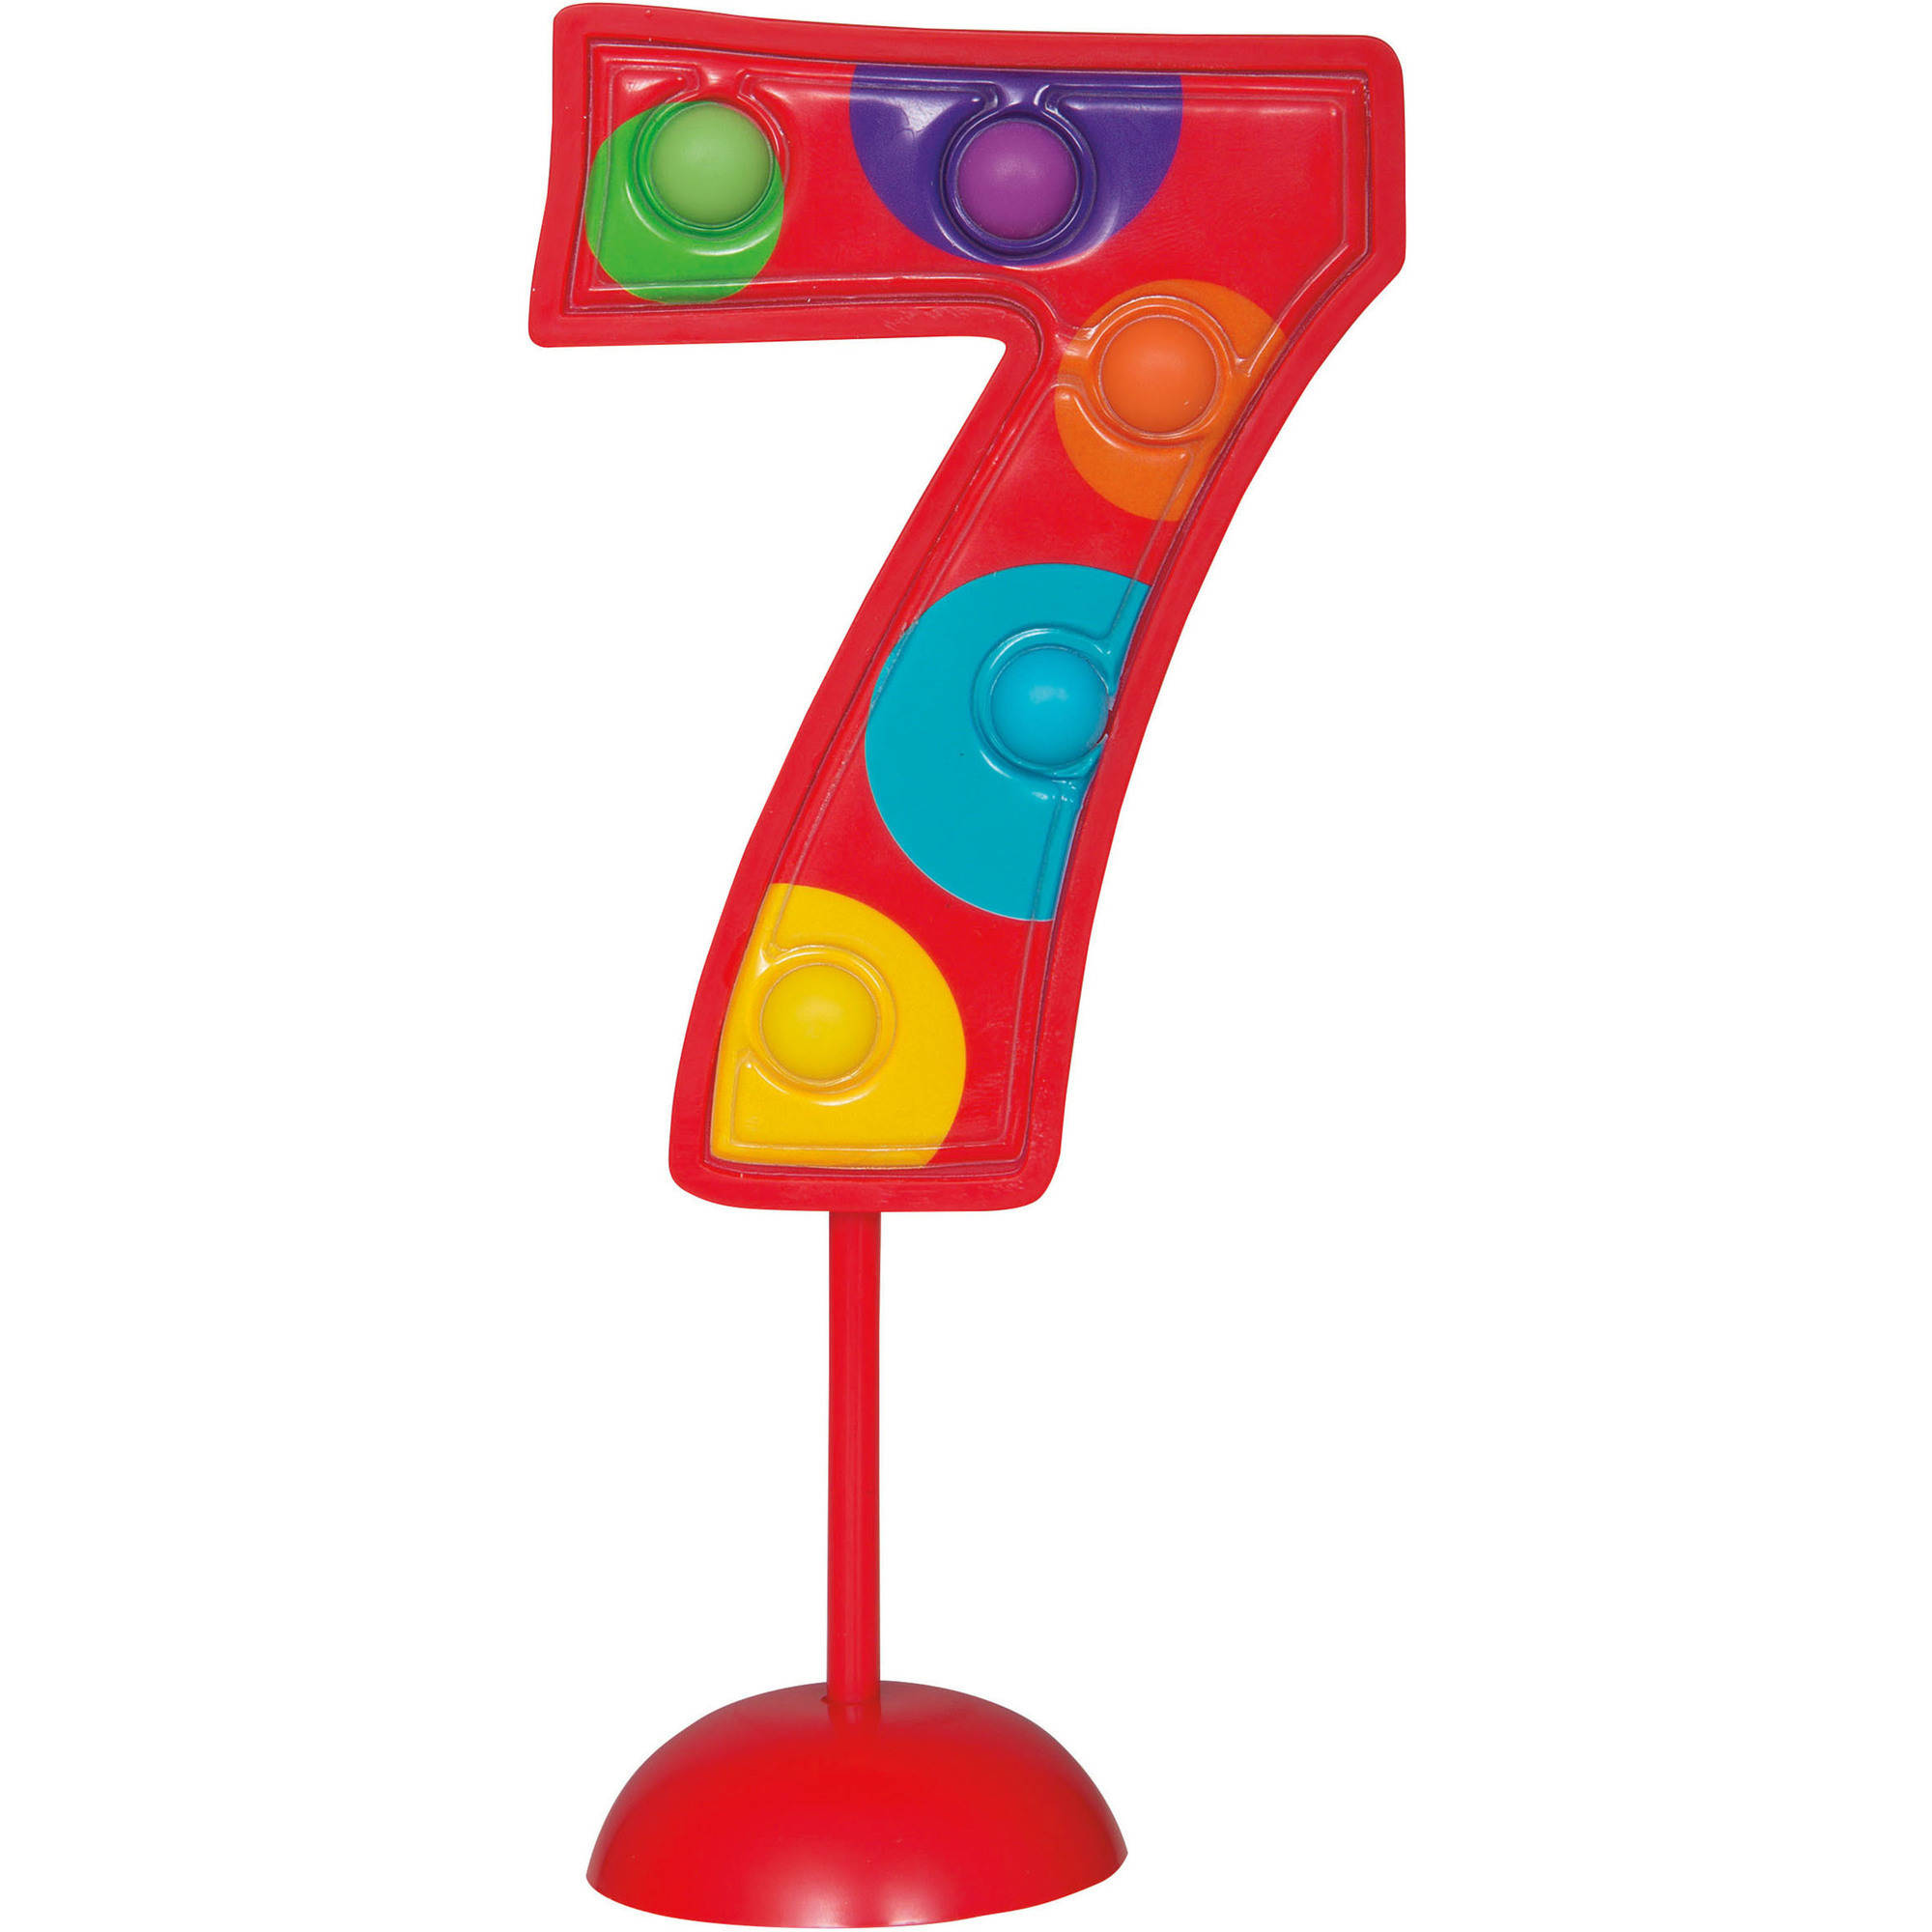 Flashing Number 7 Cake Topper Decoration, 1ct